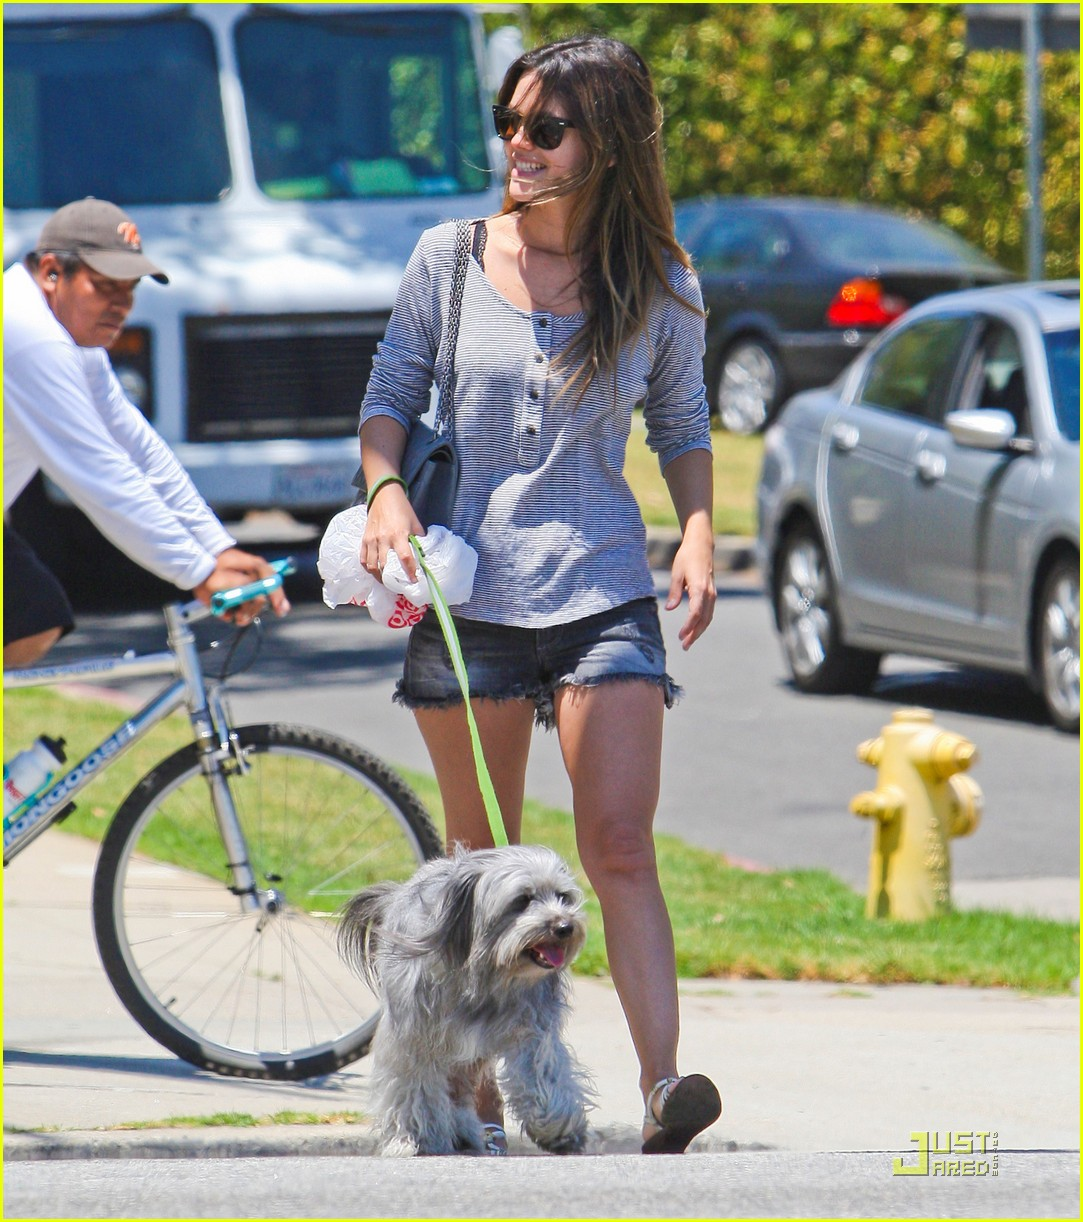 Photo of Alexis Bledel & her Dog Thurmen Murmen